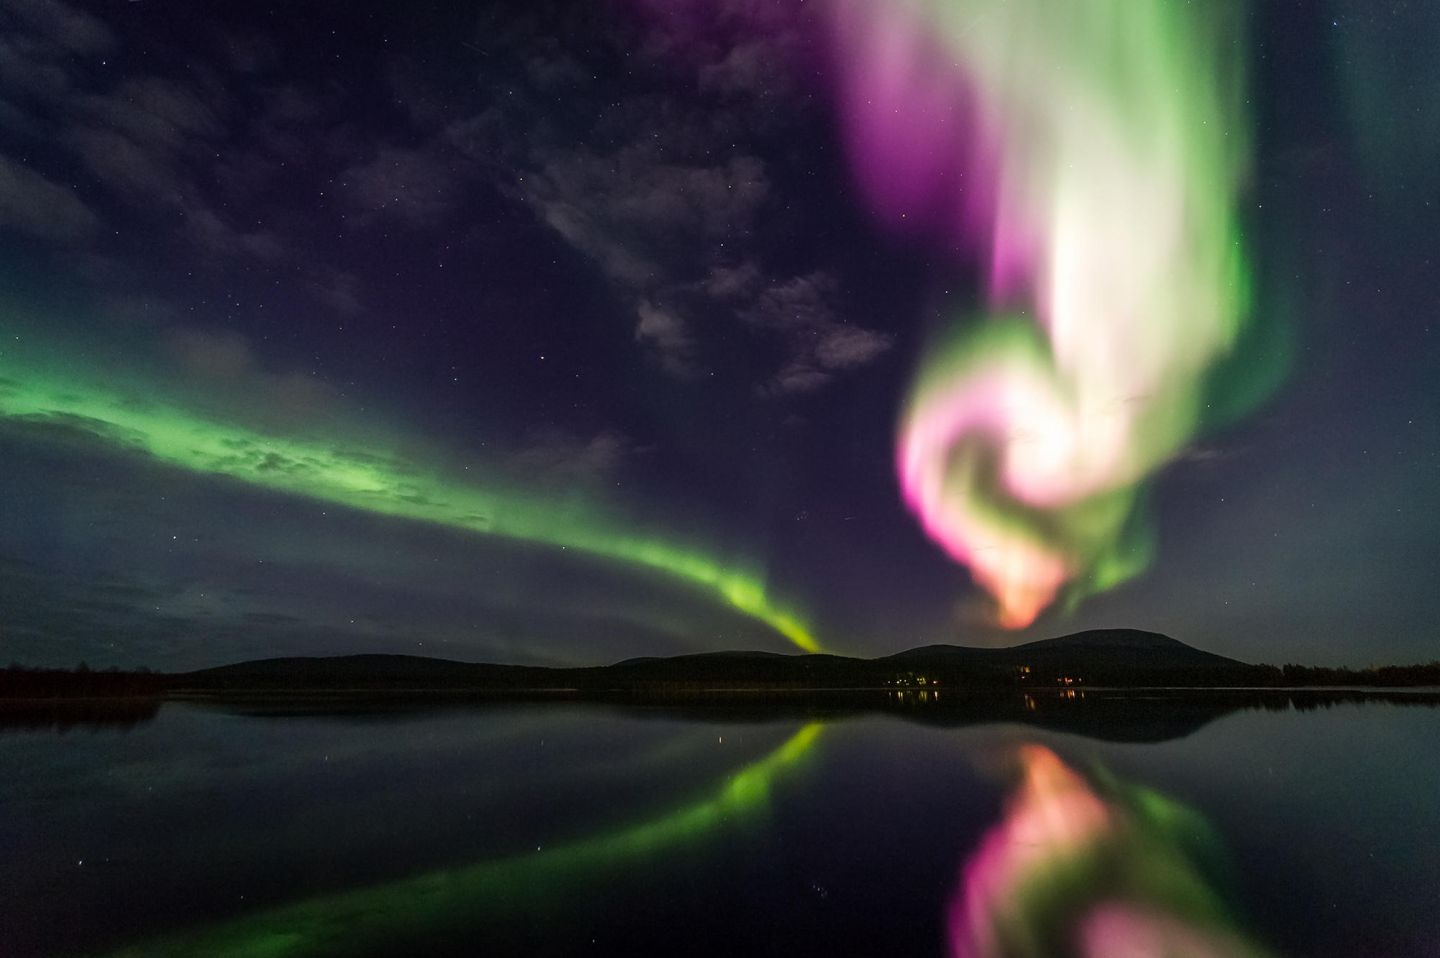 Reflected northern lights in Lapland